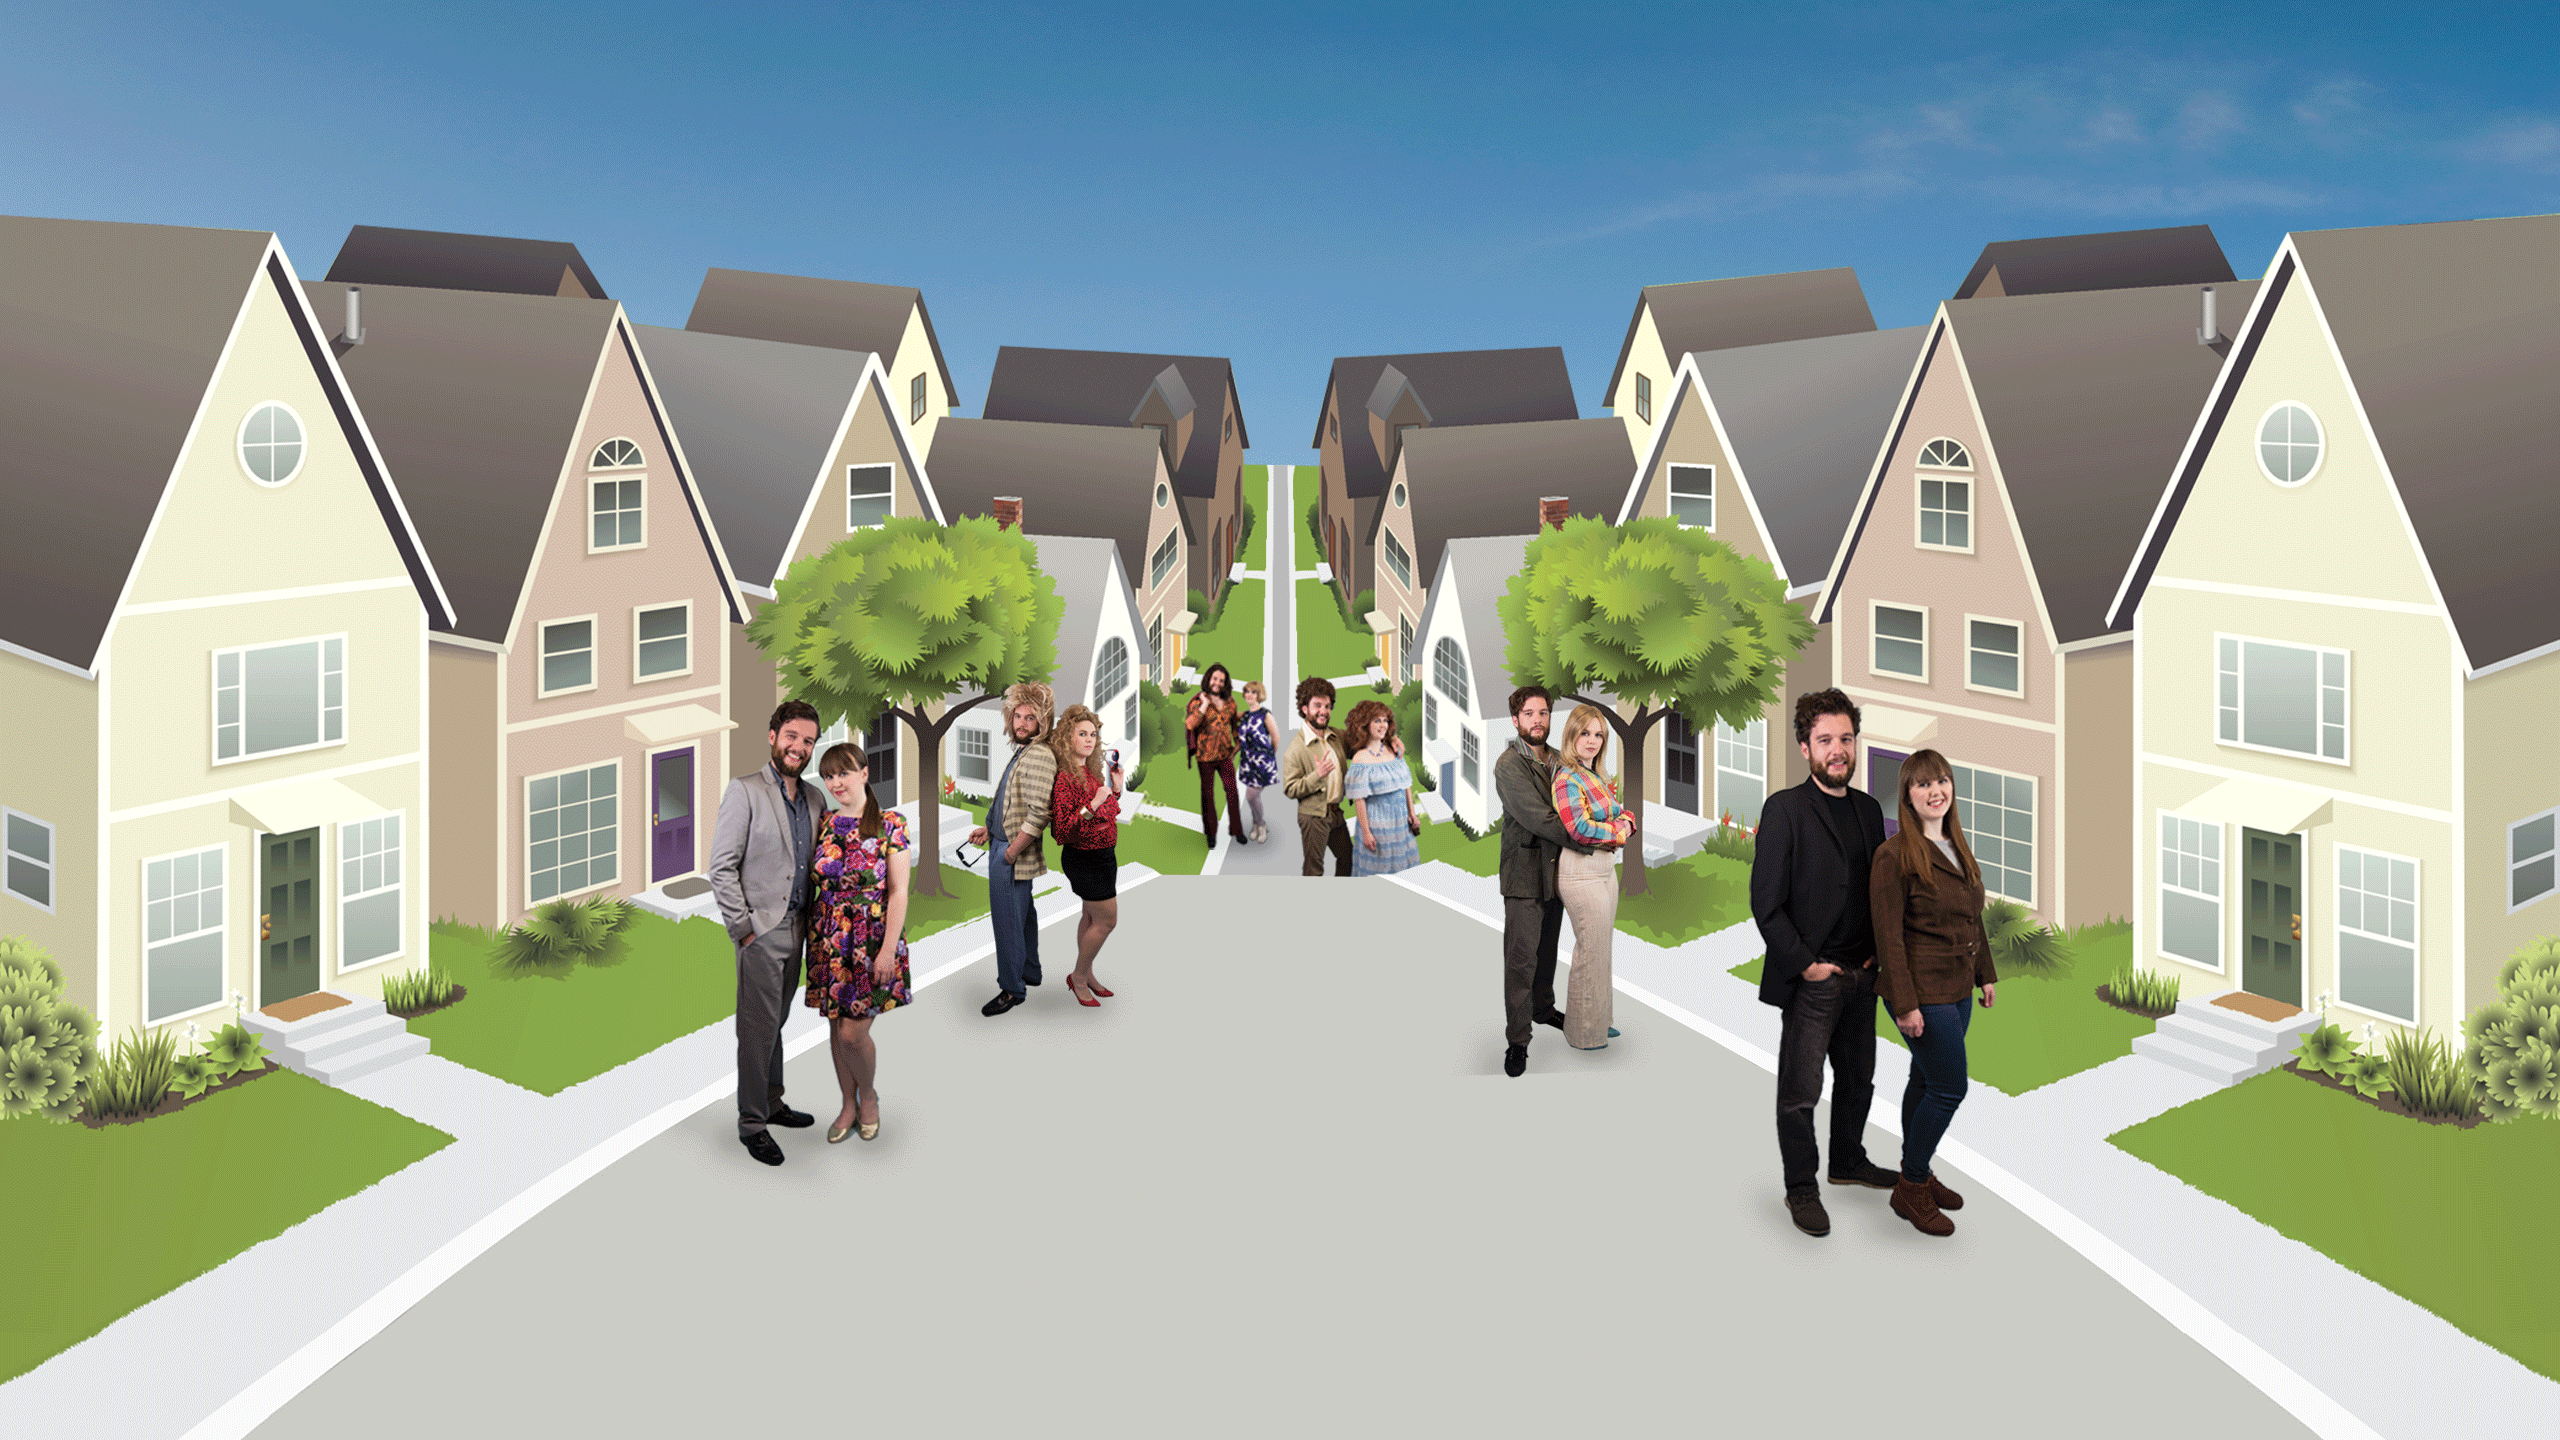 Opening image - street of houses and our couple in various fashion styles from the 1960s to present day